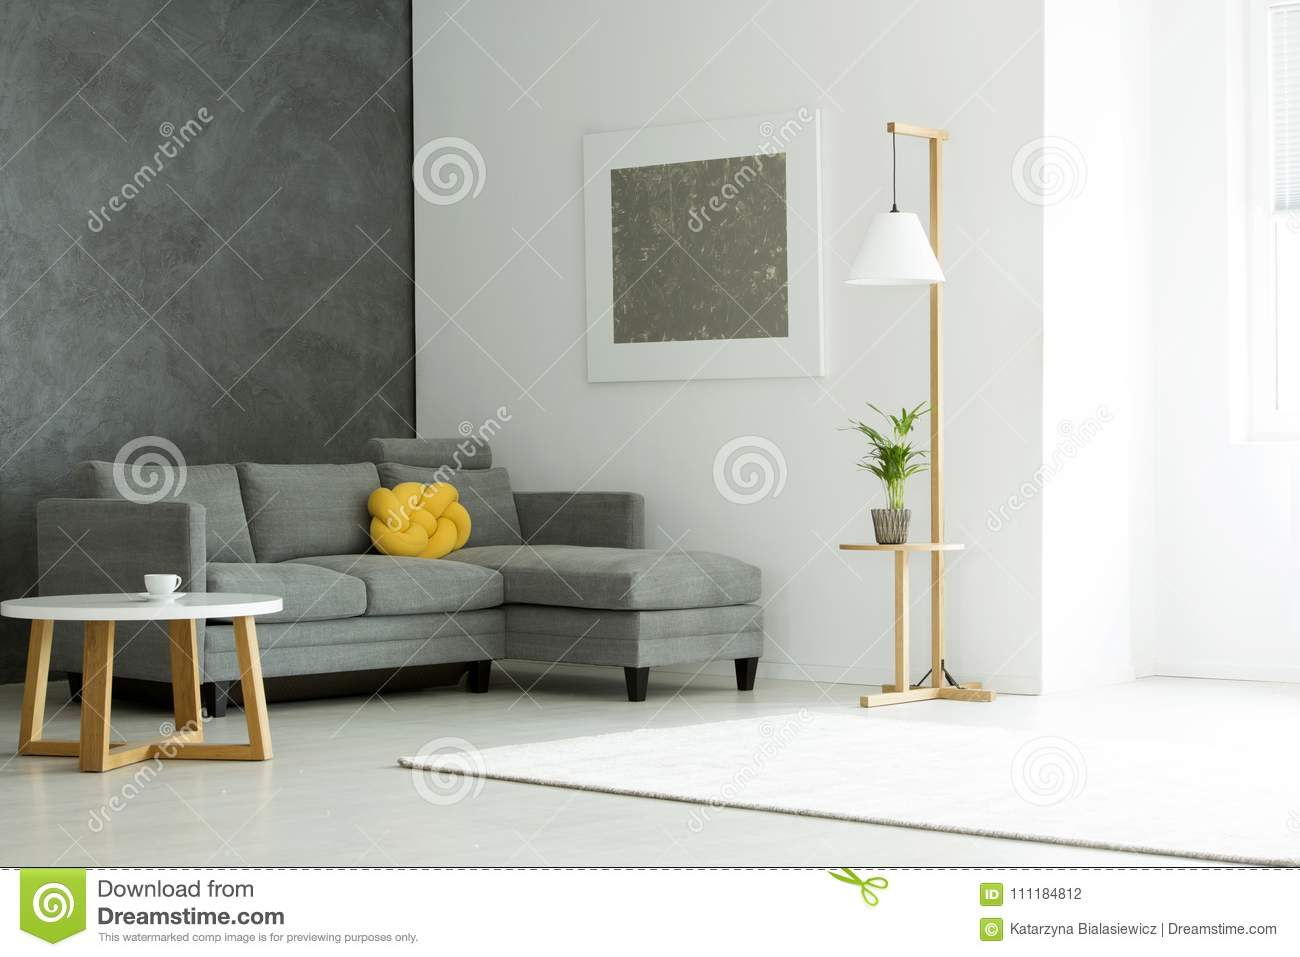 Grey Painting In Living Room Stock Photo - Image of simple, bright ...